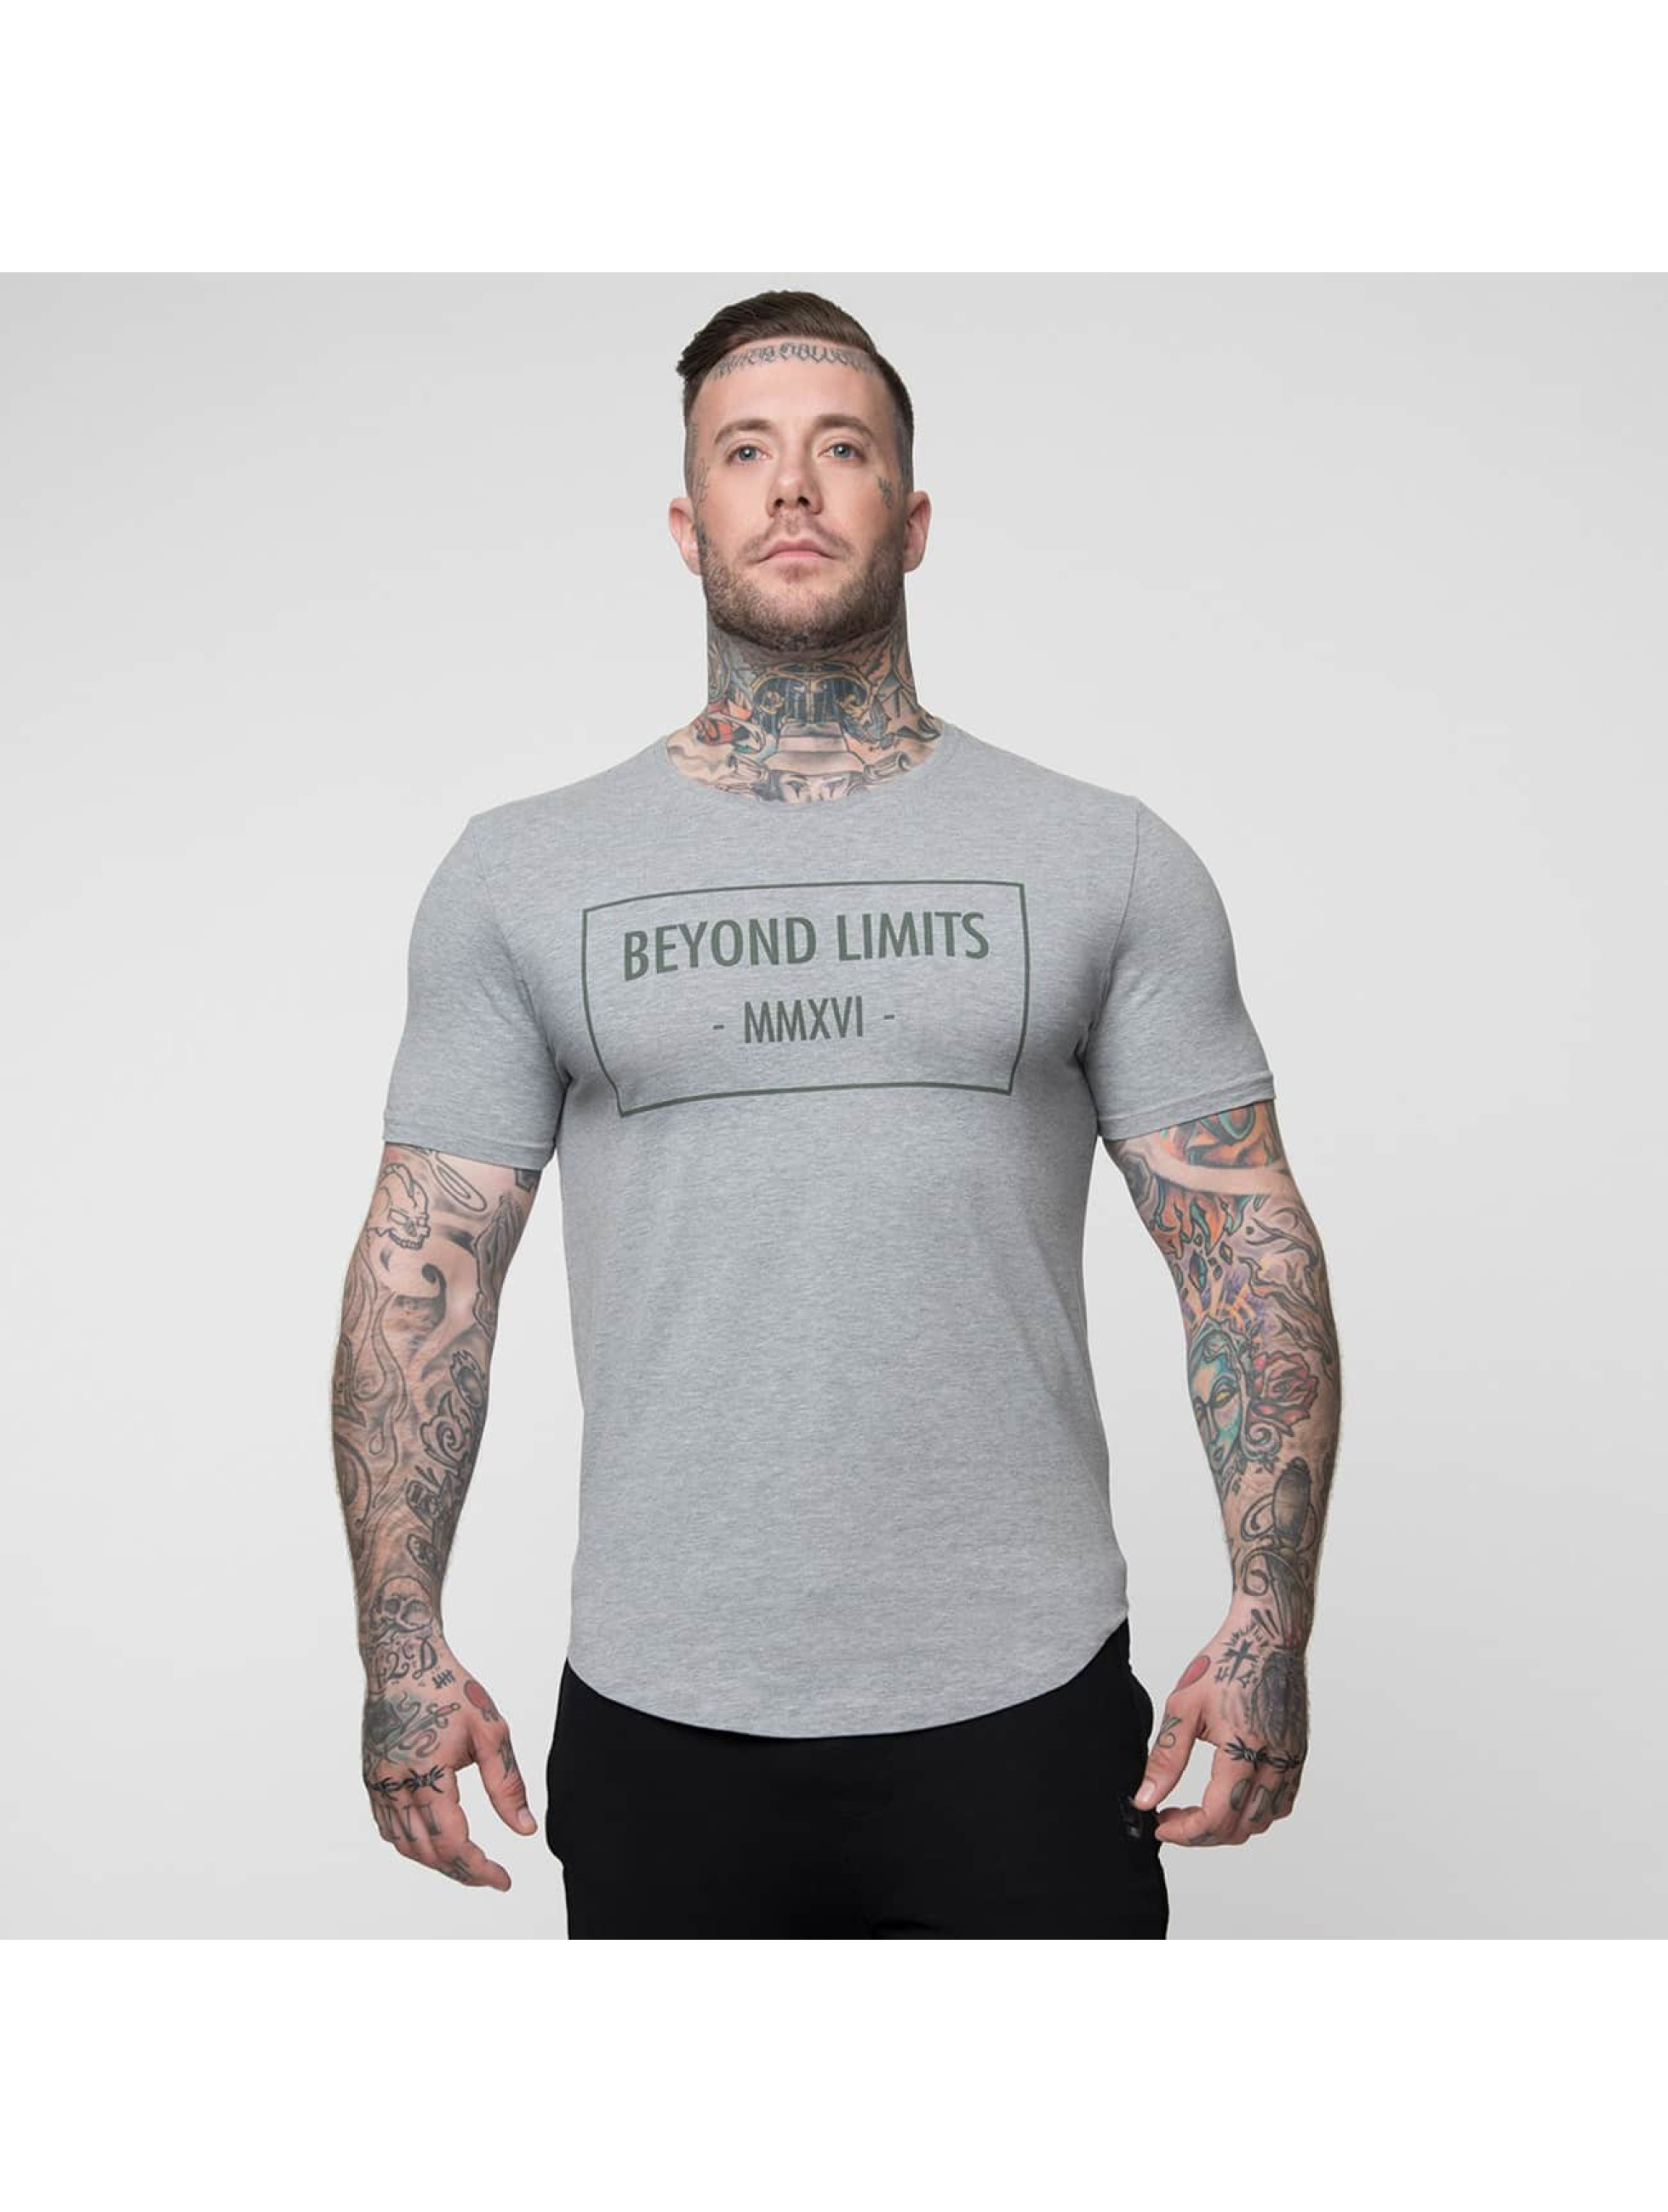 Beyond Limits T-Shirt Signature grau